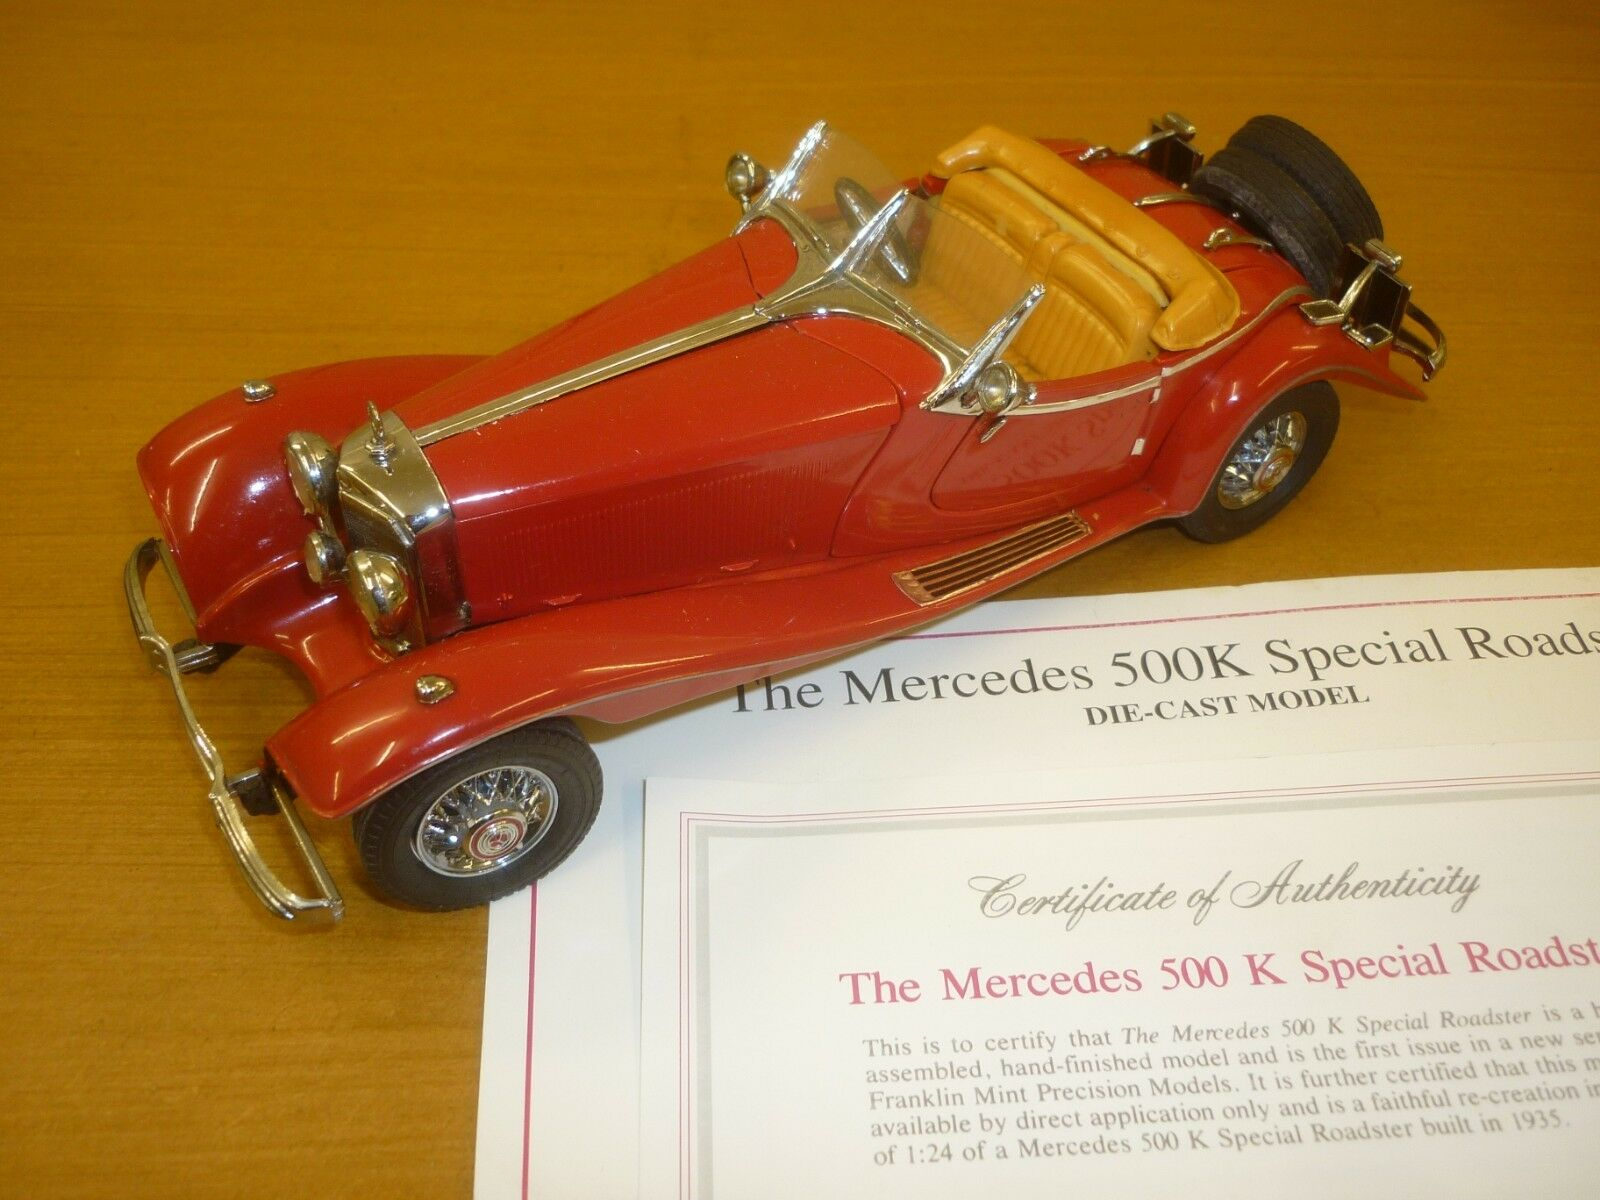 A Franklin mint scale model of a 1935 Mercedes Benz 500K